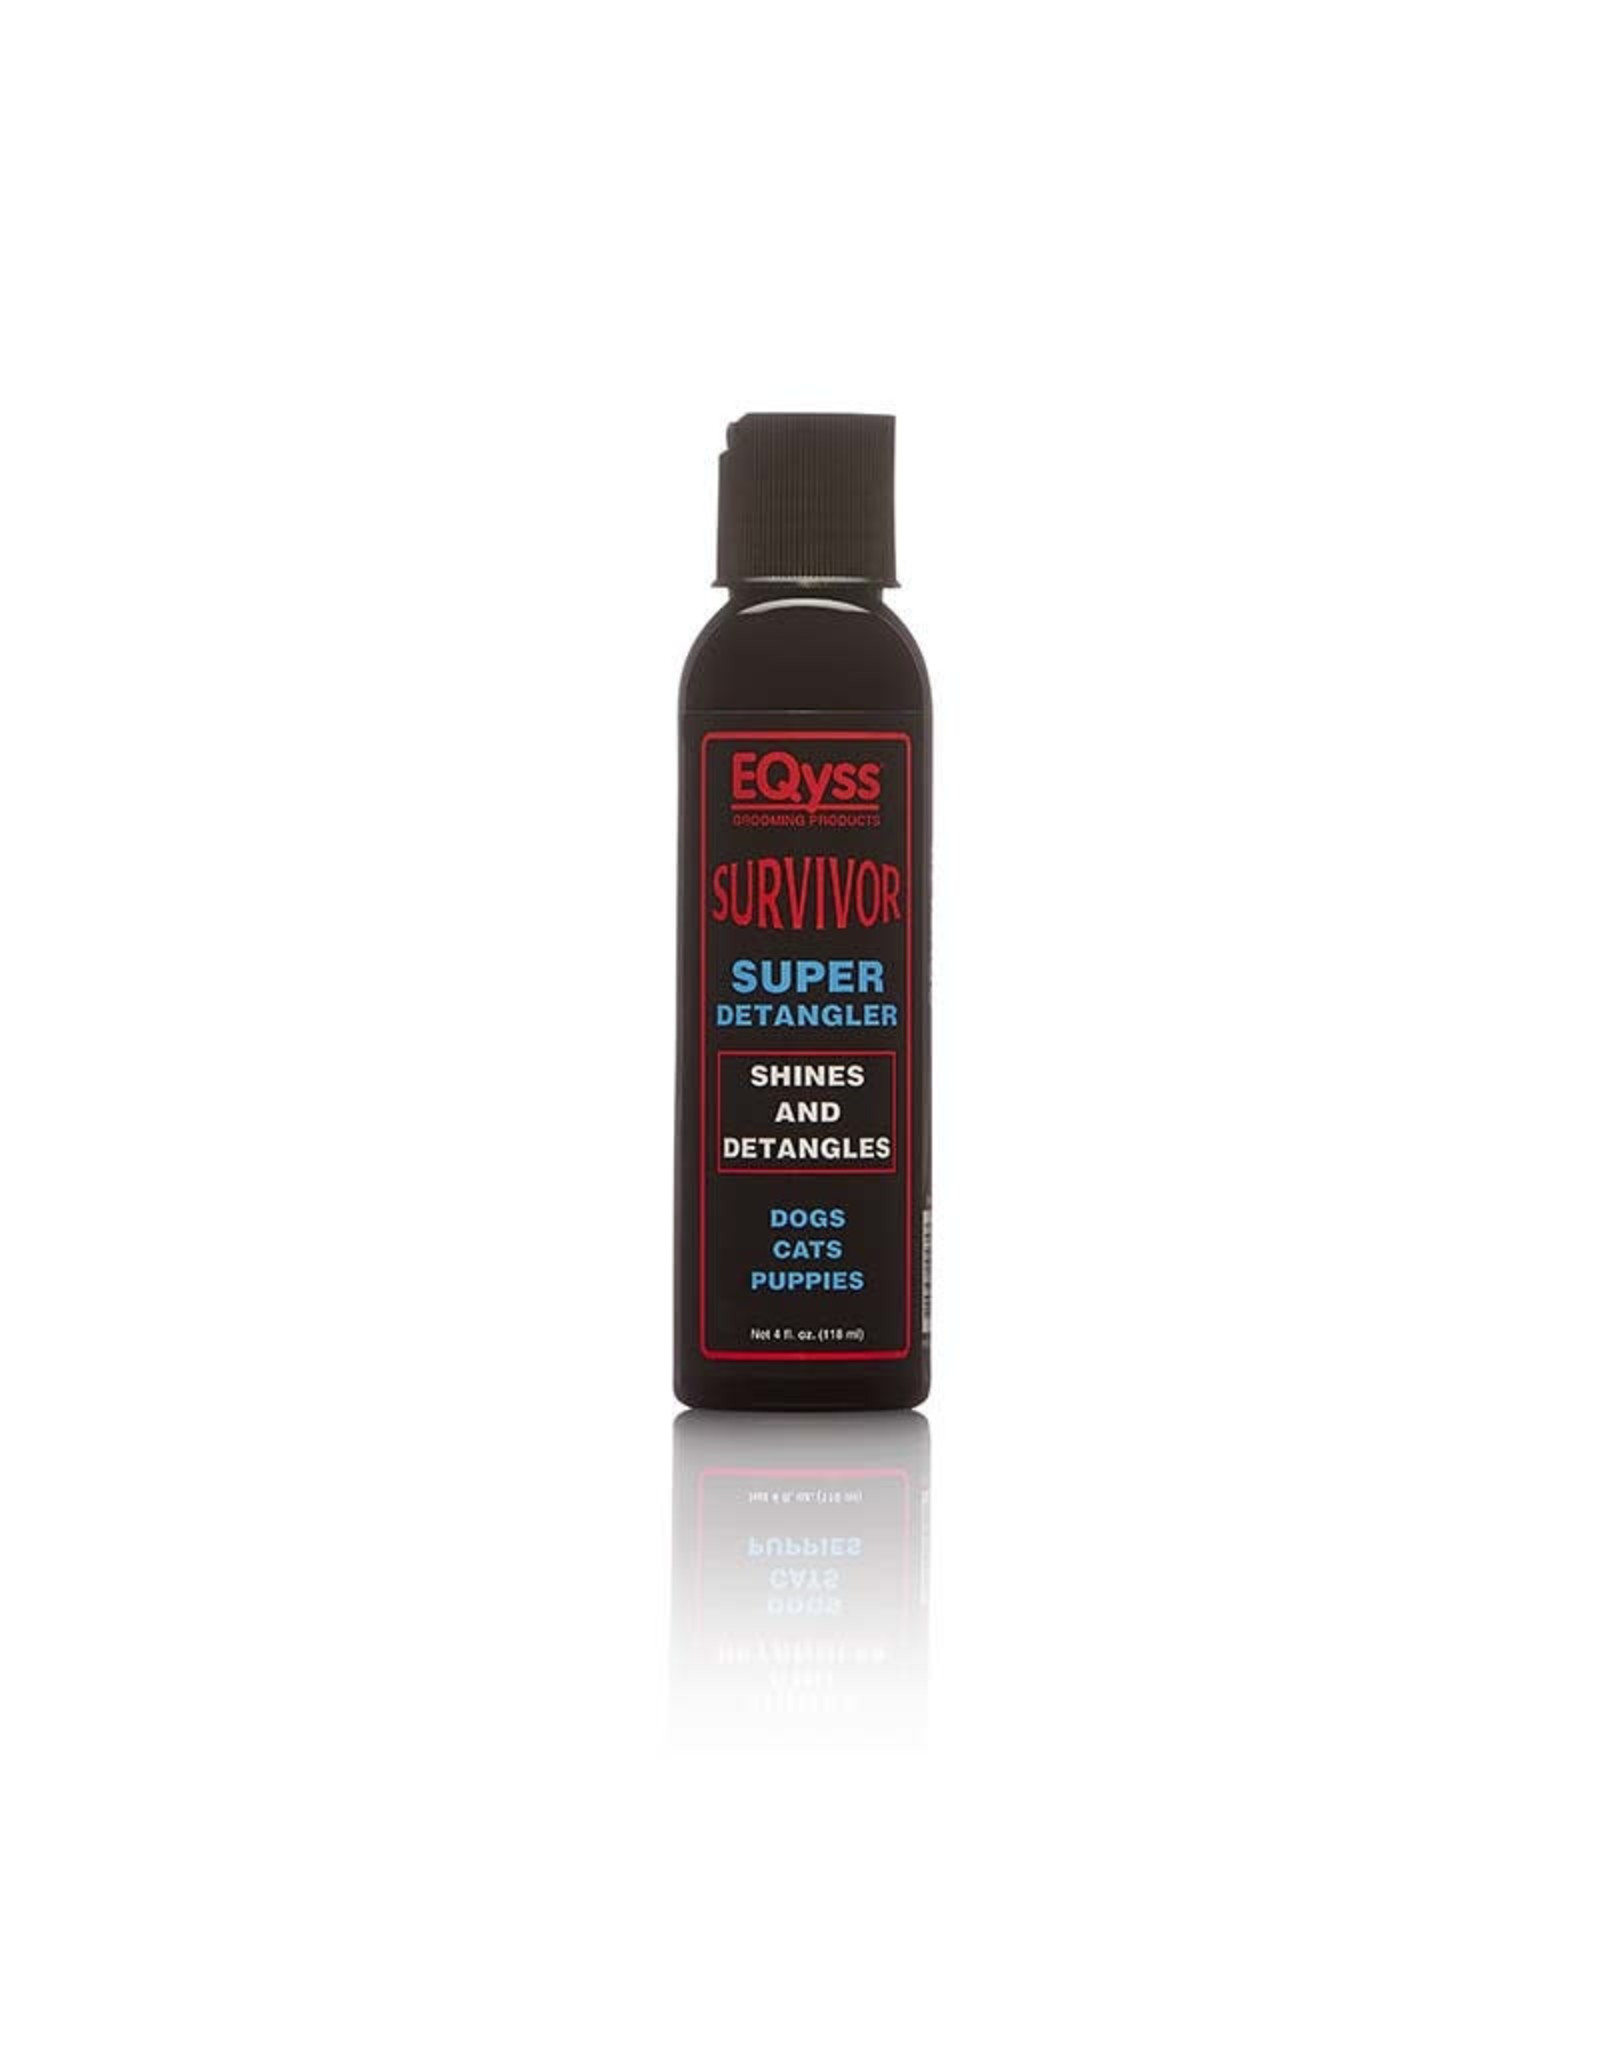 Eqyss Survivor Detangler & Shine 4 oz